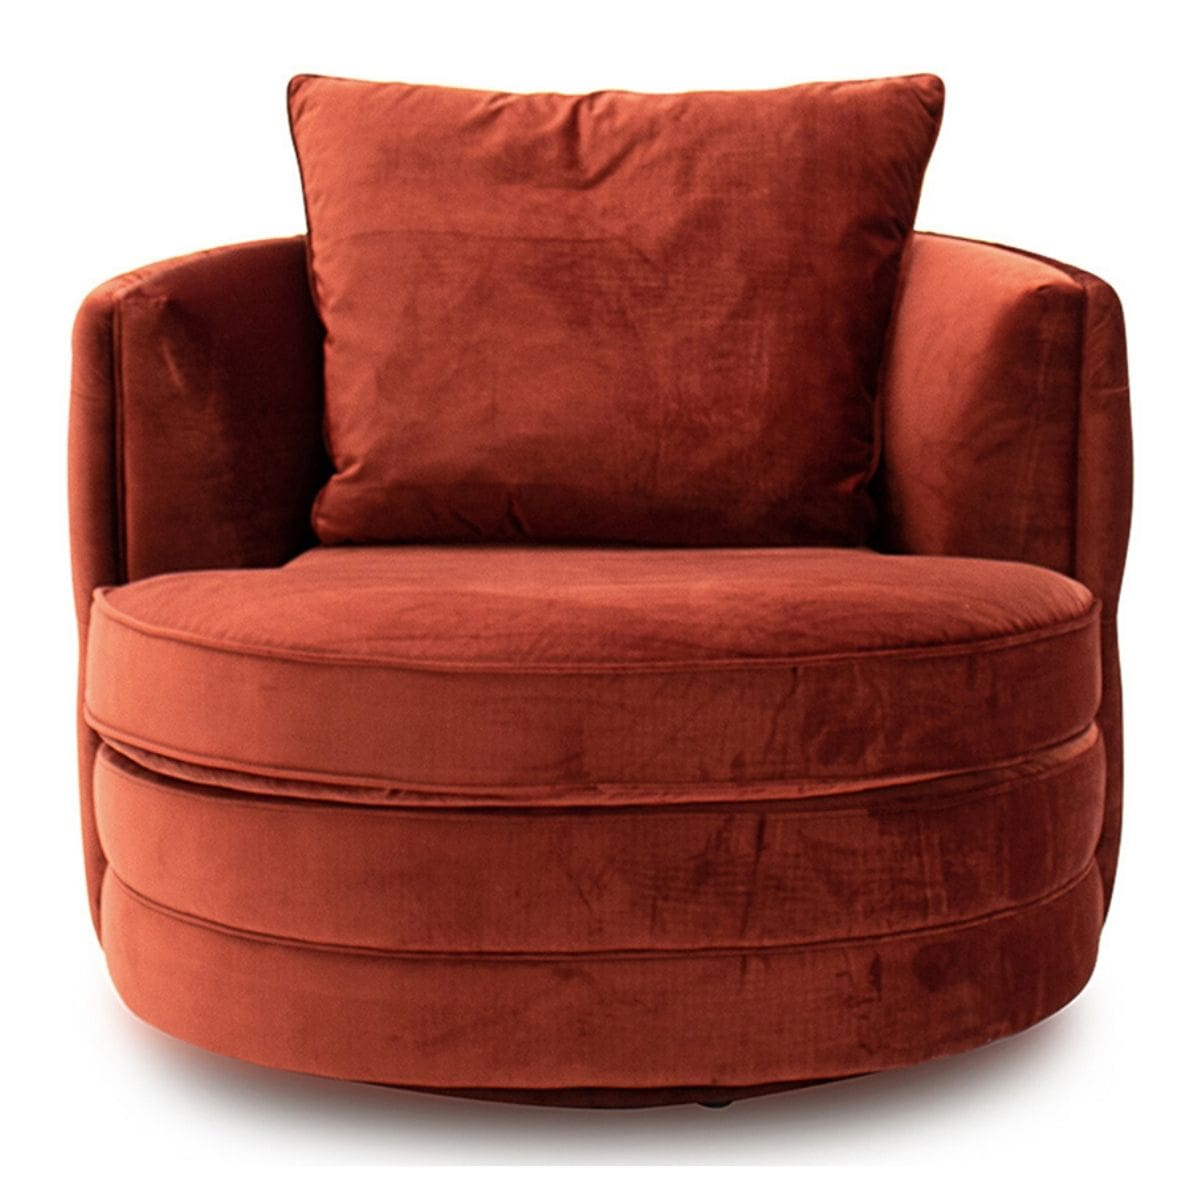 curved button back swivel chair